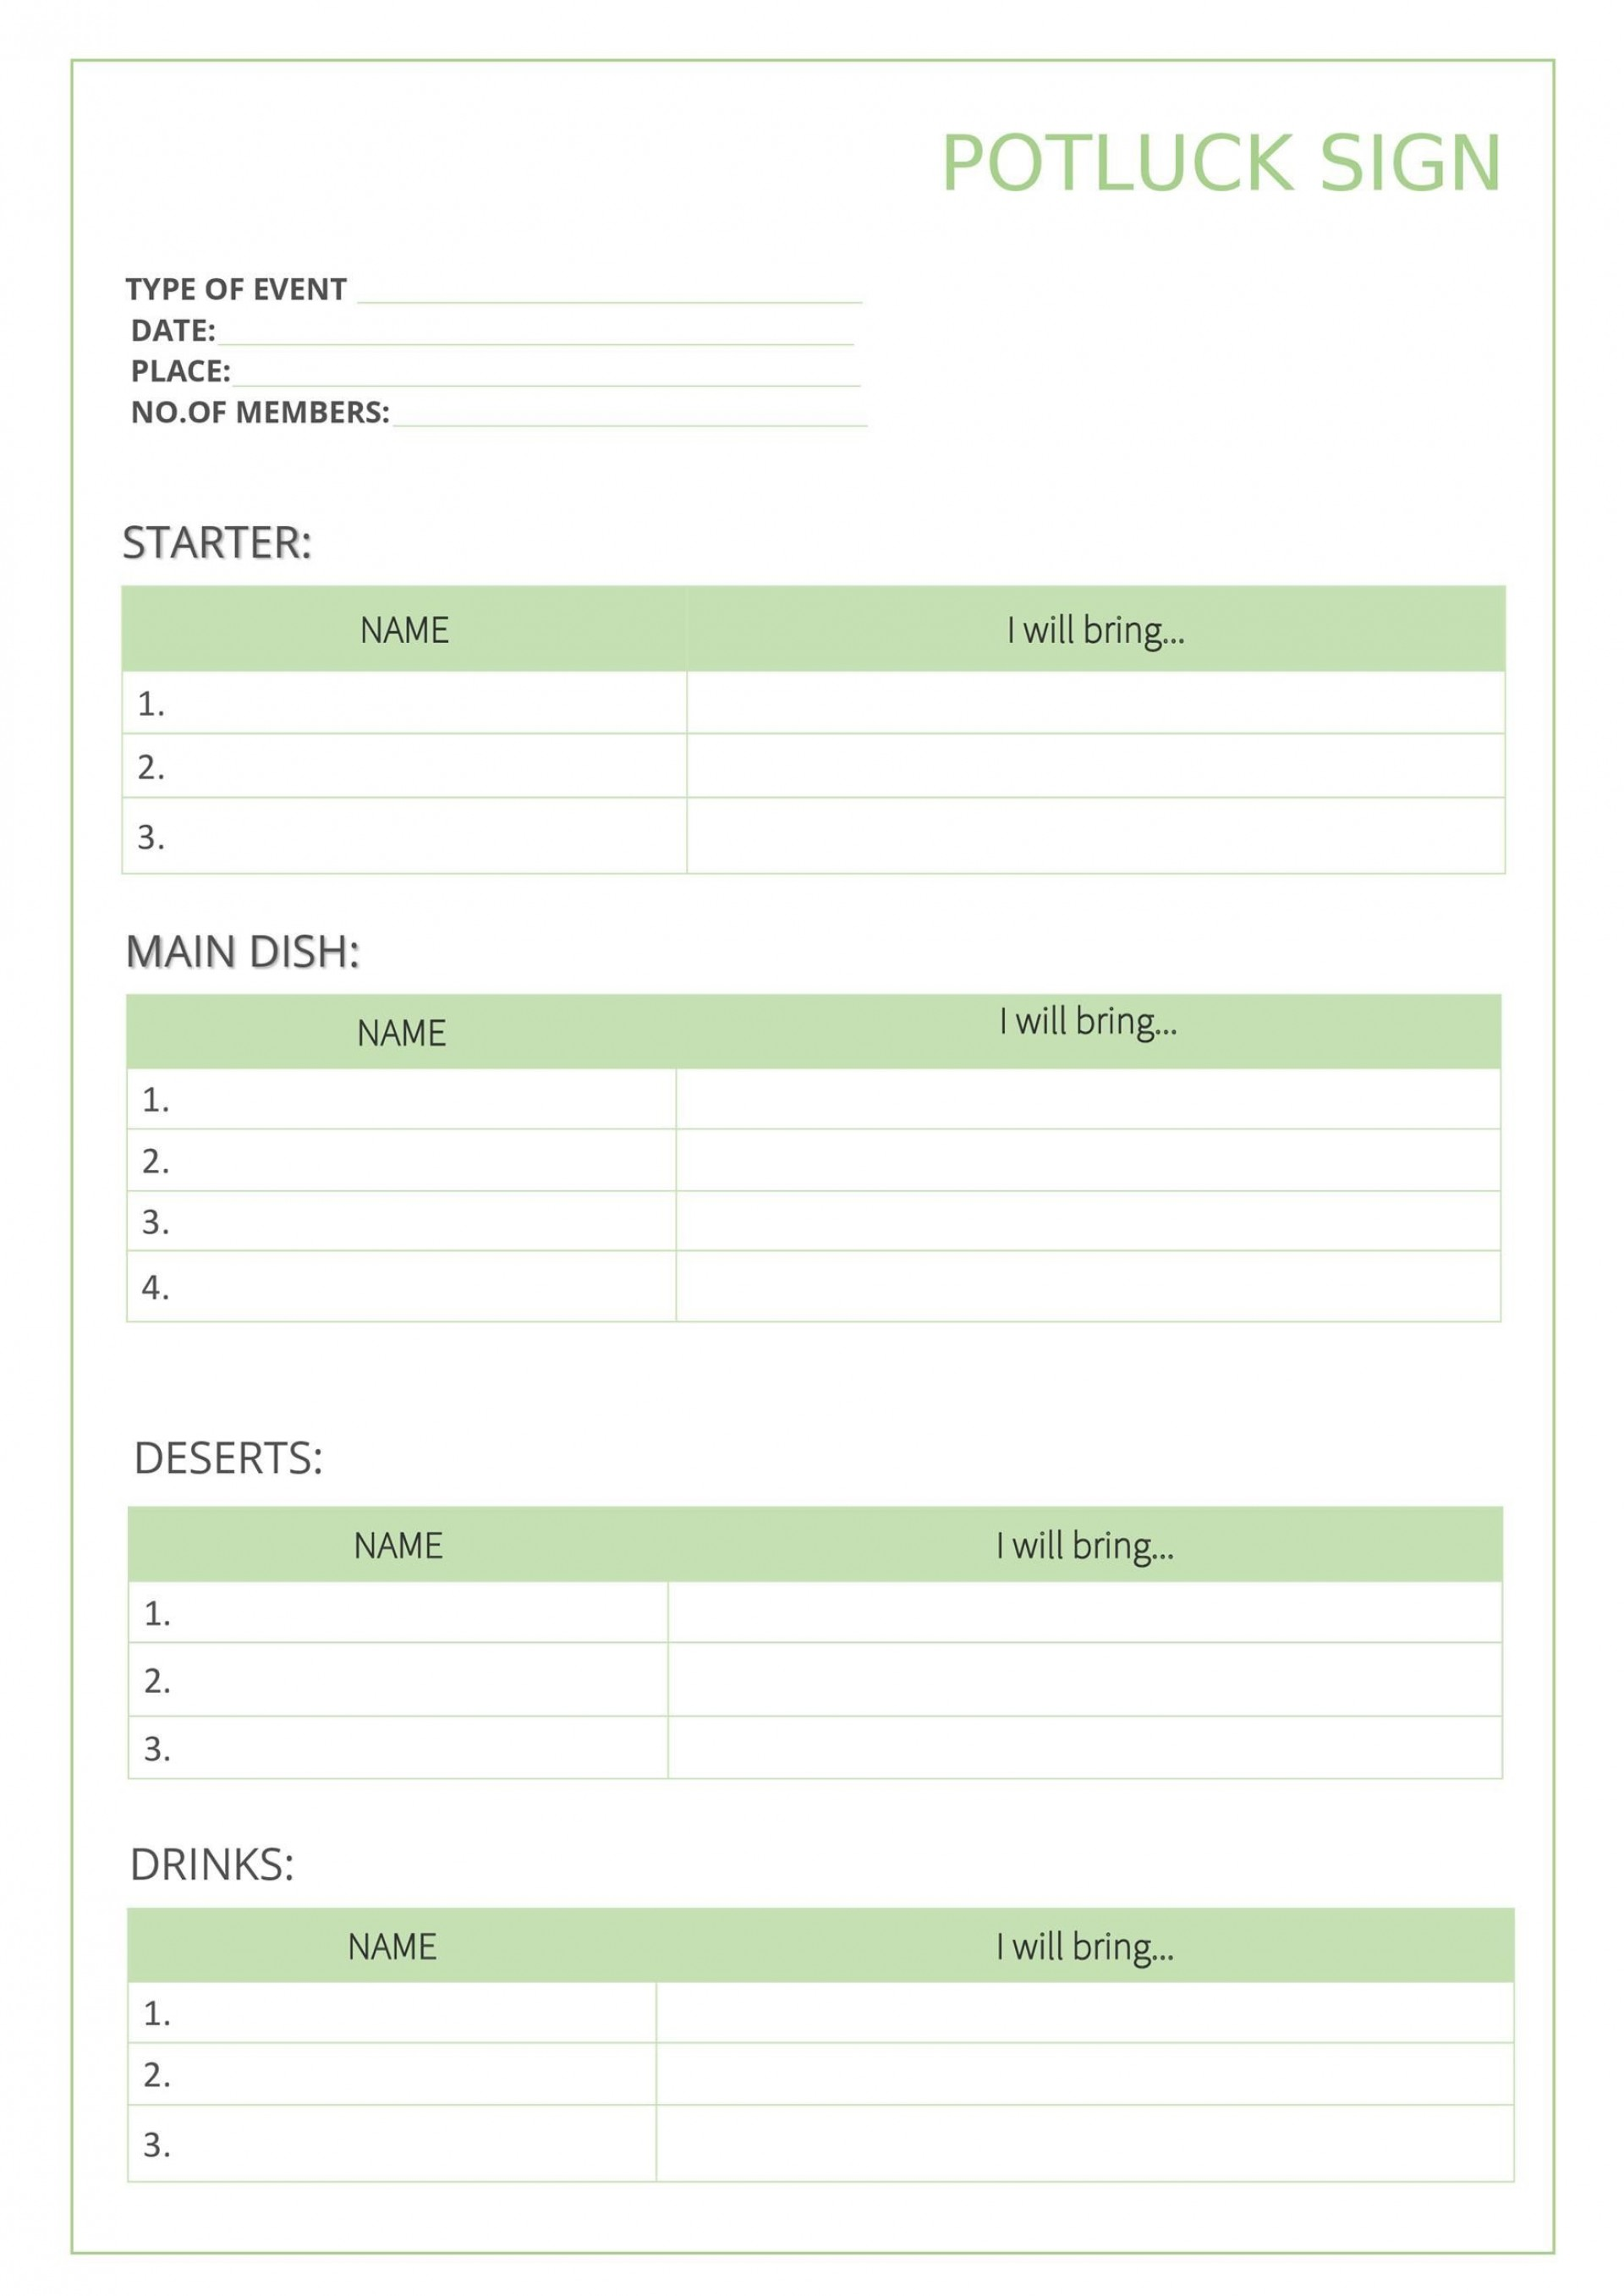 009 Outstanding Potluck Signup Sheet Template Word Photo  Microsoft Free Printable Sign Up1920